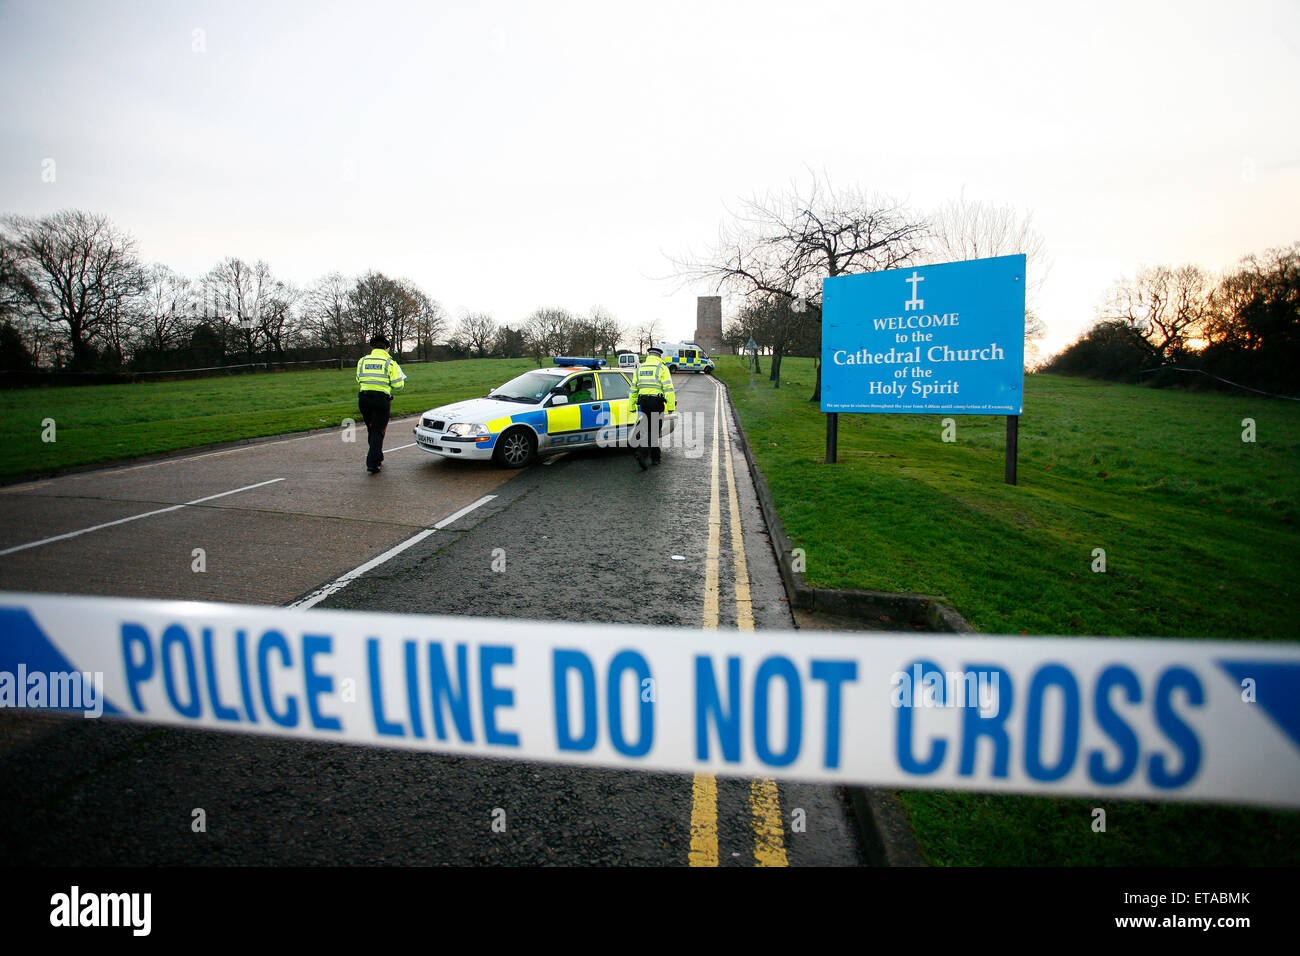 Police line do not cross - Crime scene at Guildford Cathedral - Stock Image